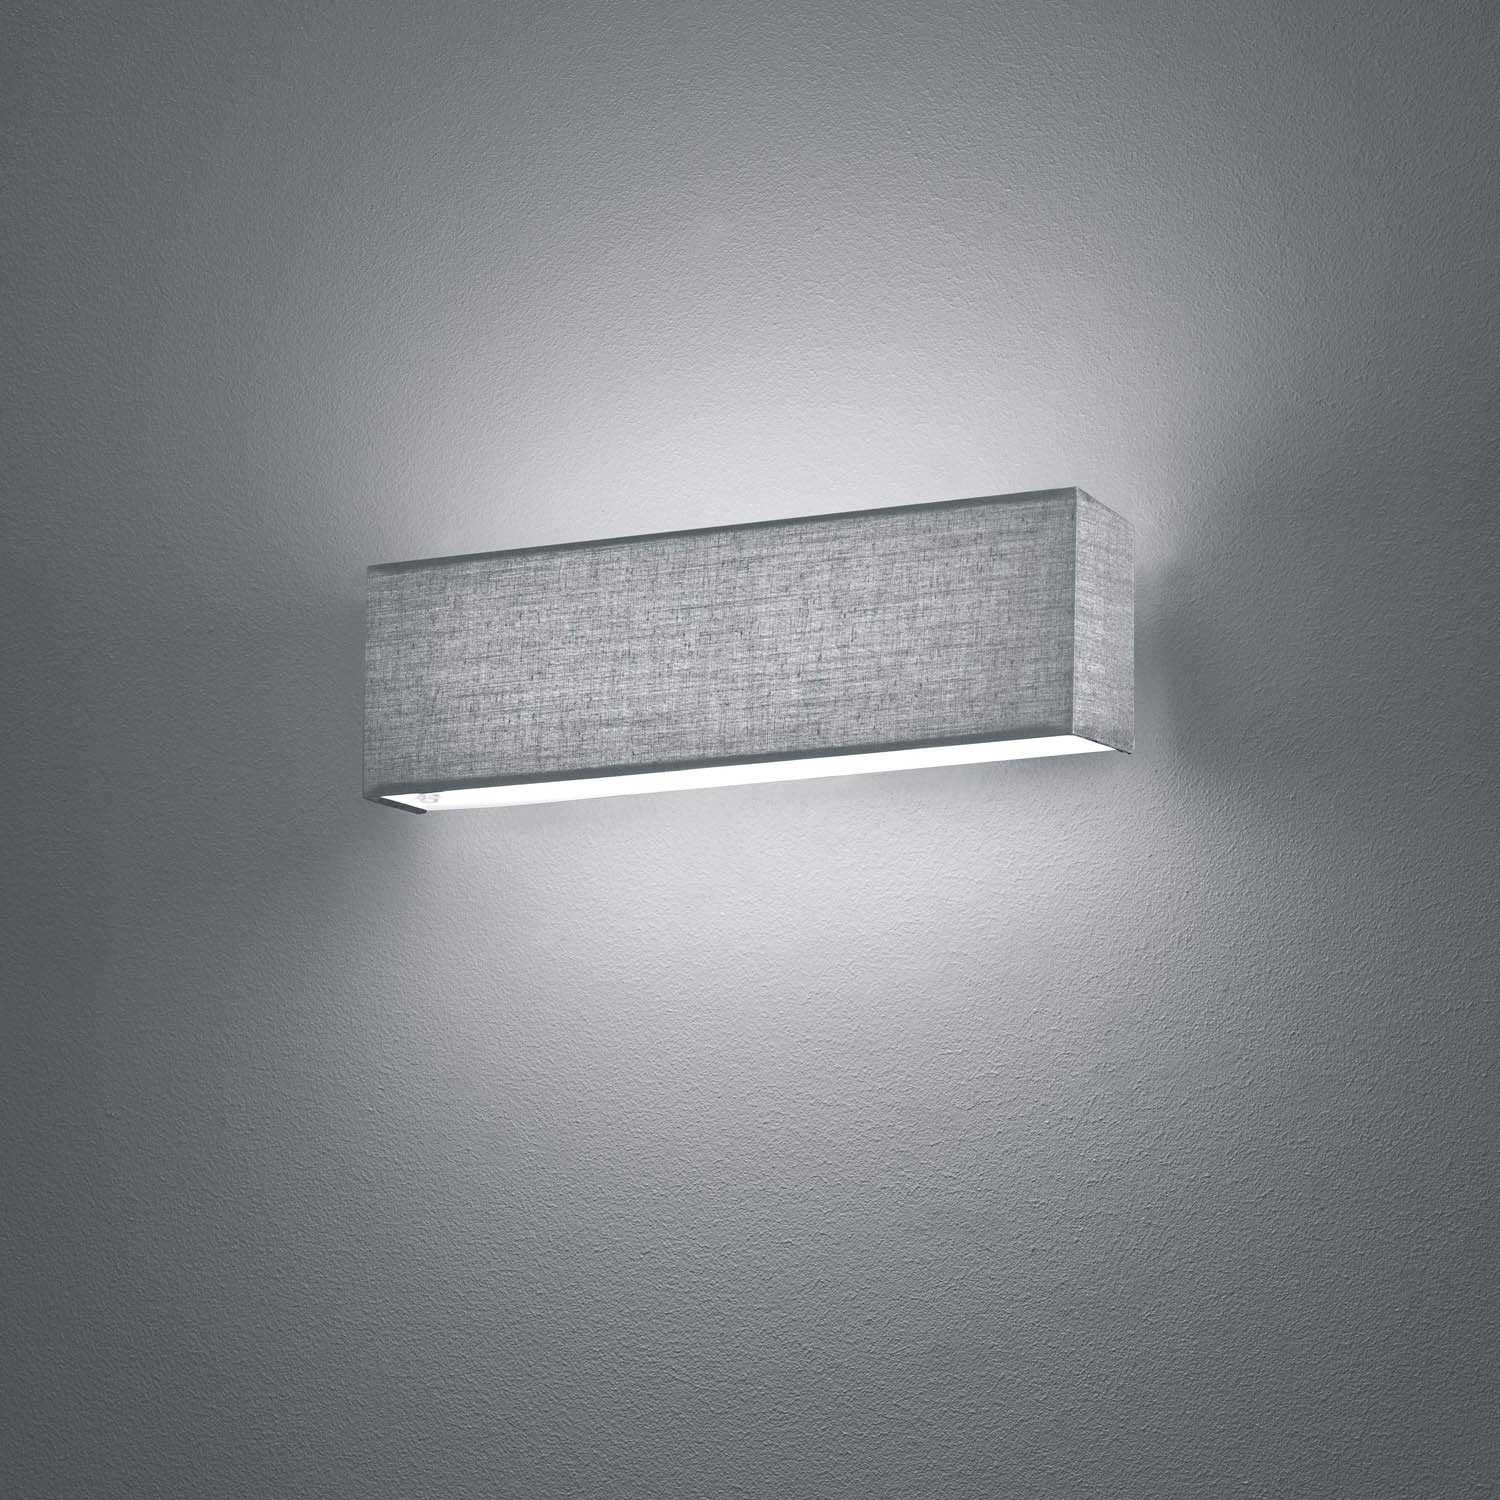 Apliques De Pared Para Dormitorio Mejor Aplique De Pared Led Carlo 6w Gris Luzete Of 41  Adorable Apliques De Pared Para Dormitorio